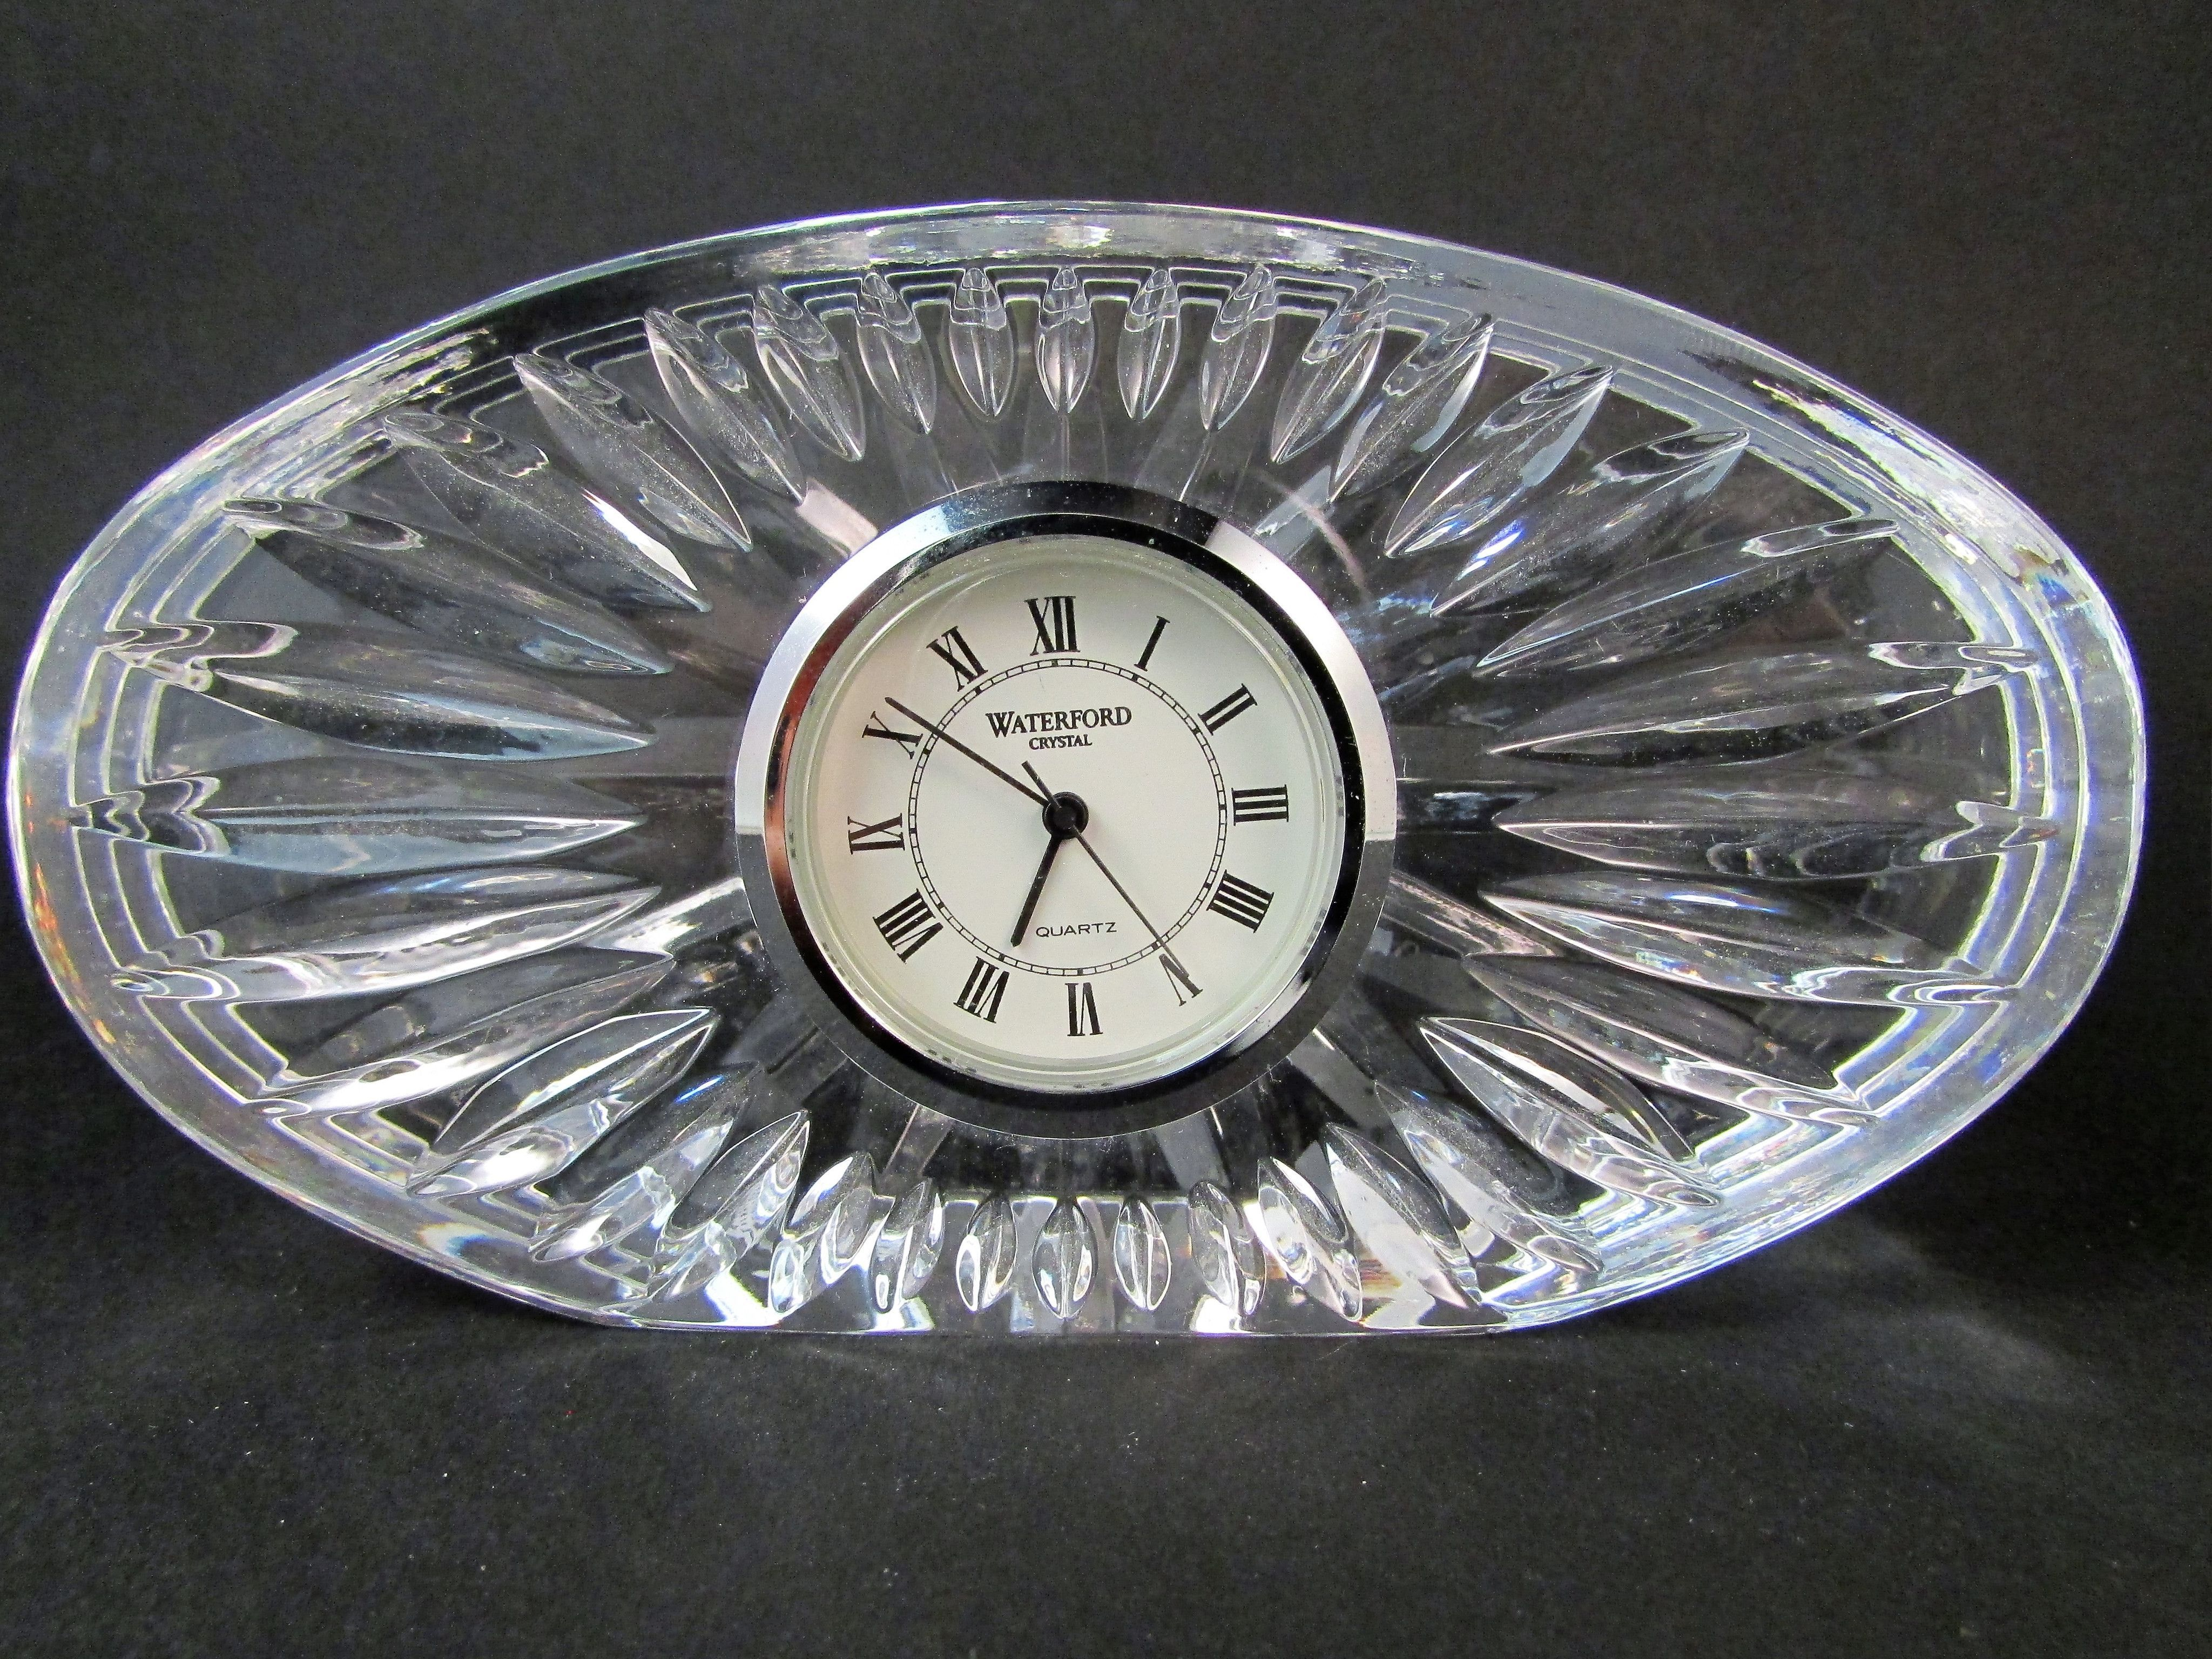 Waterford Crystal Desk Clock Oval Shape Quartz Movement